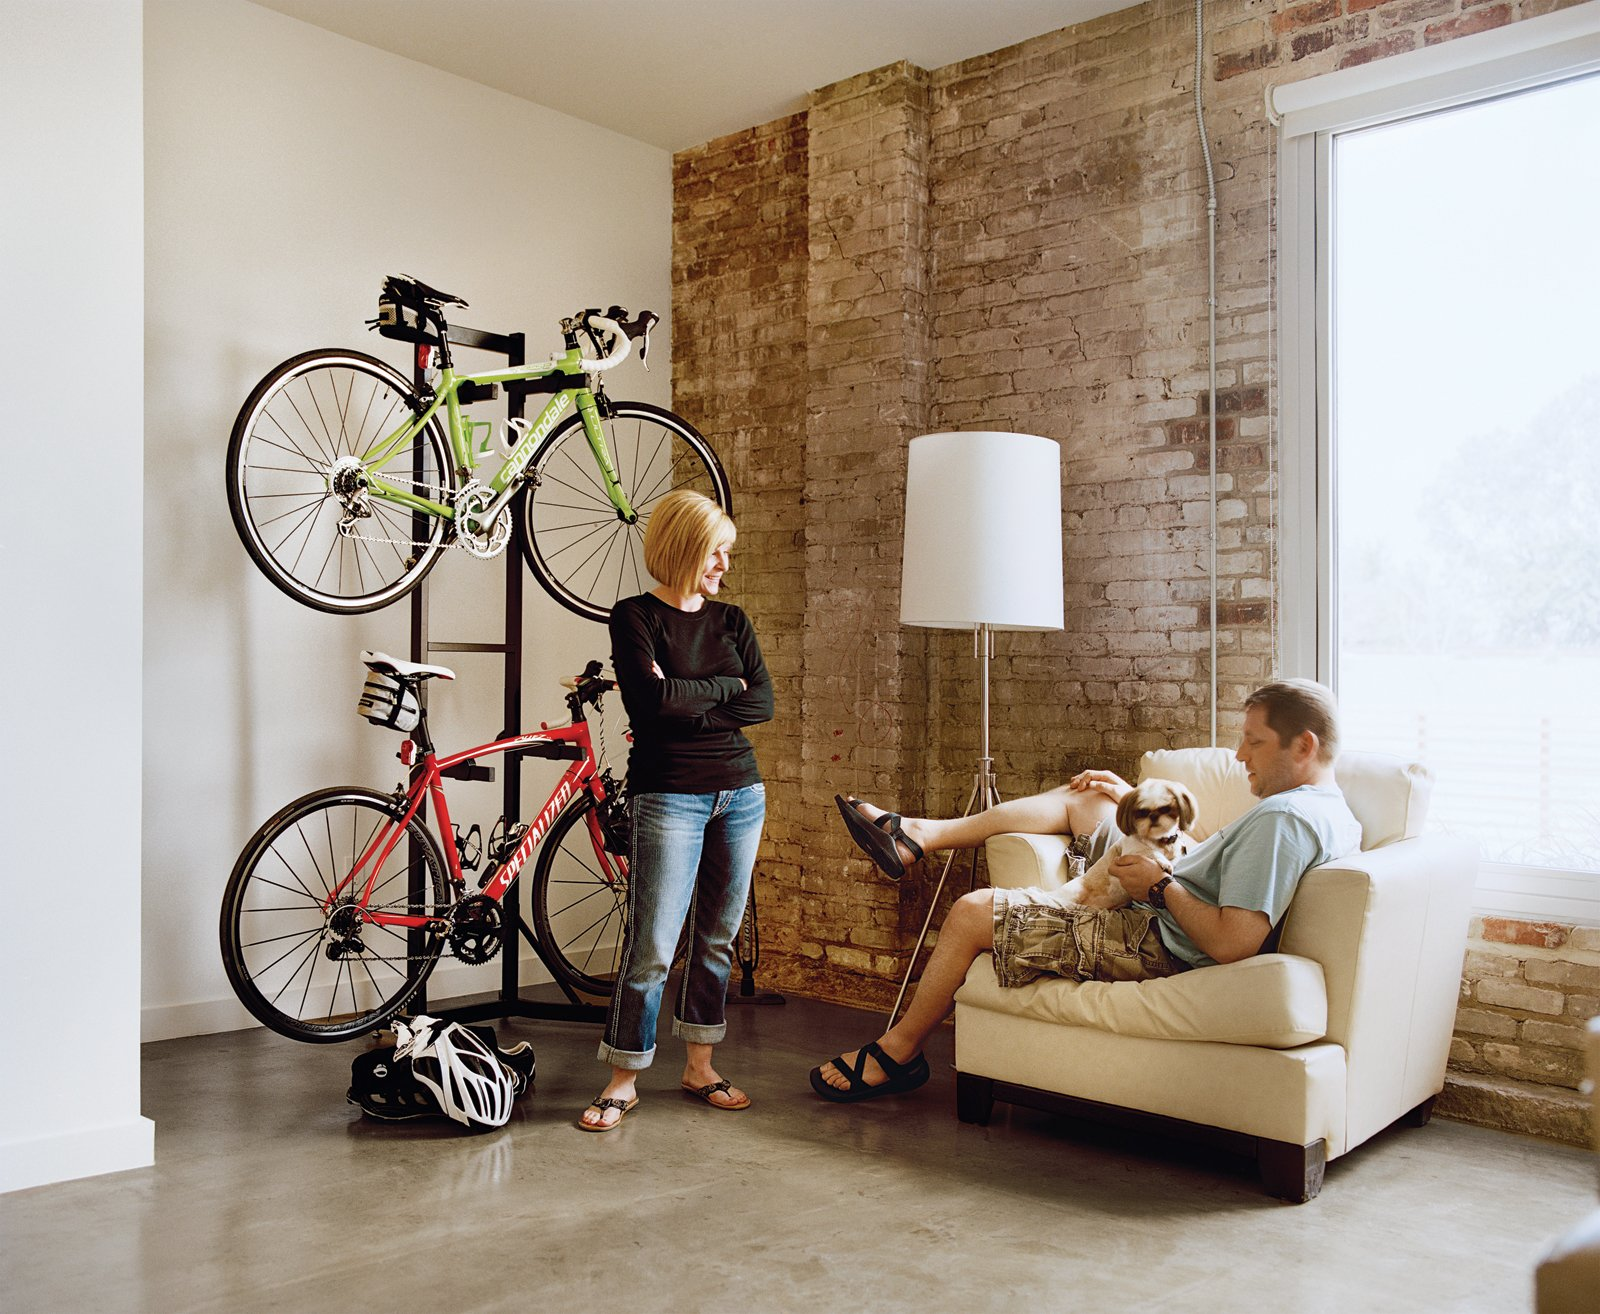 "Loft B tenants Melissa and Keith Bishop downsized from a 3,000 square foot space to a cozy 720 square foot loft. ""We downsized our lives,"" Melissa says. ""We streamlined."" Tagged: Sofa, Storage Room, and Shelves Storage Type. Building Community - Photo 8 of 13"